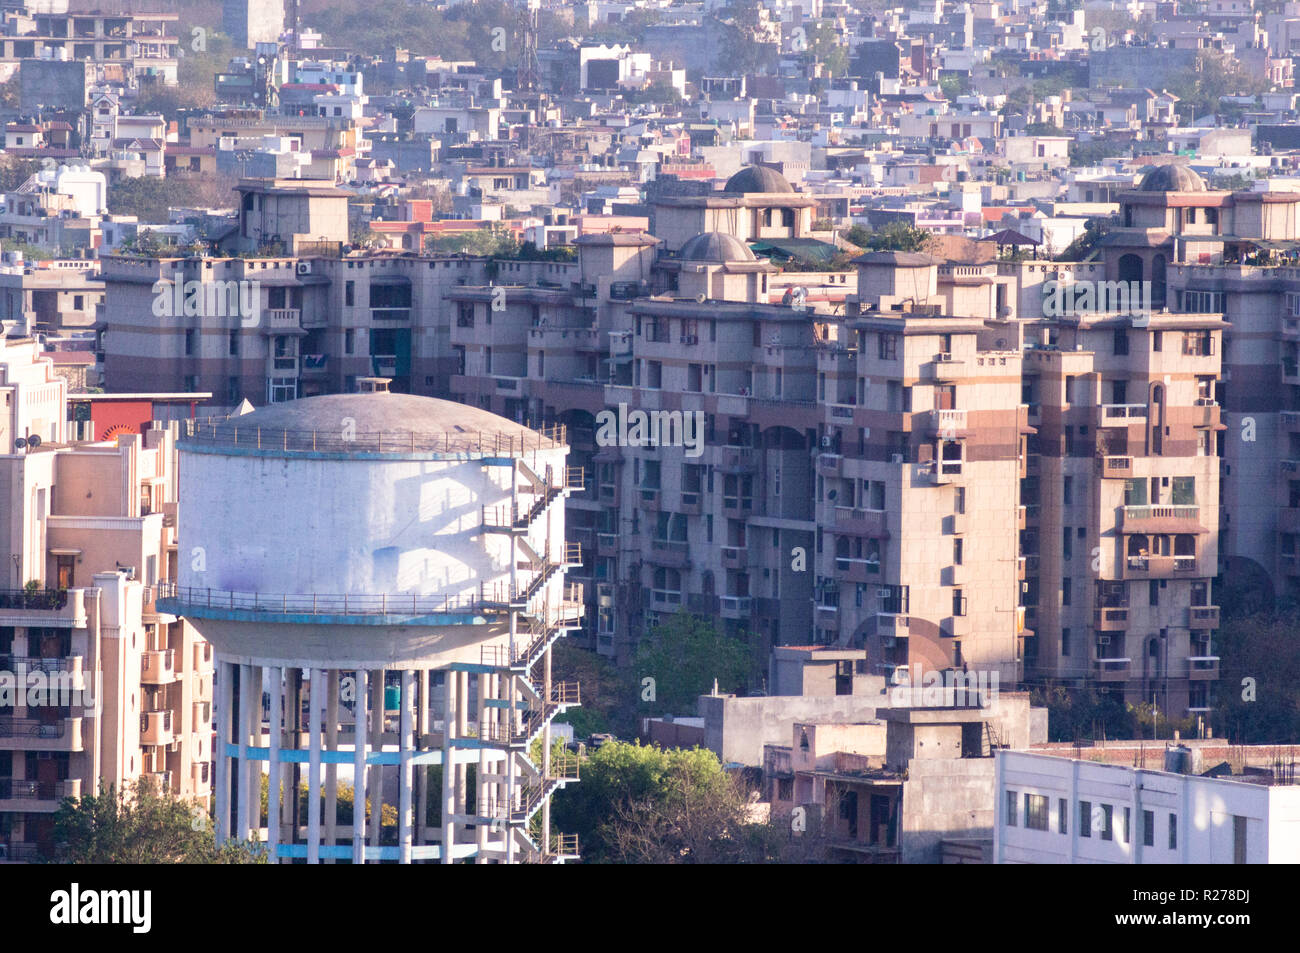 Aerial shot of water tower in the middle of locality - Stock Image